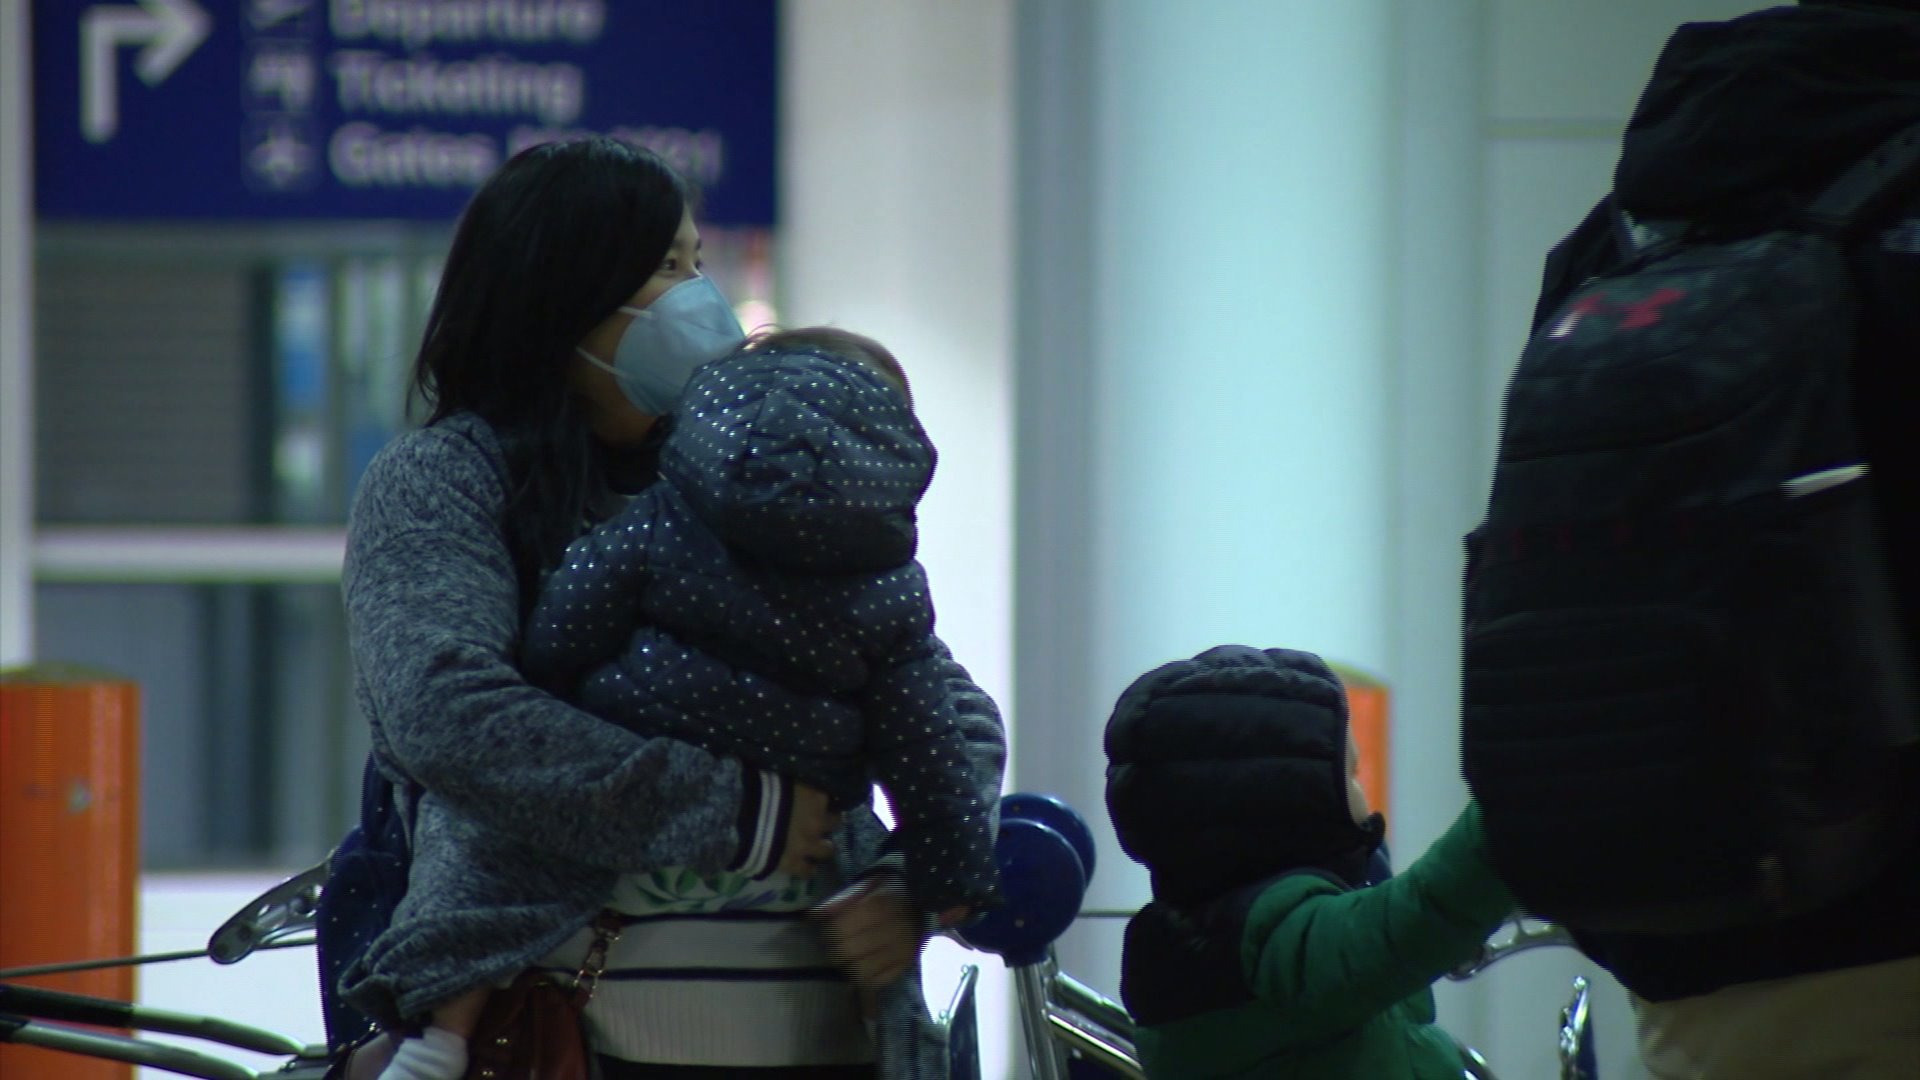 US advises against travel to China over virus outbreak | WGN-TV